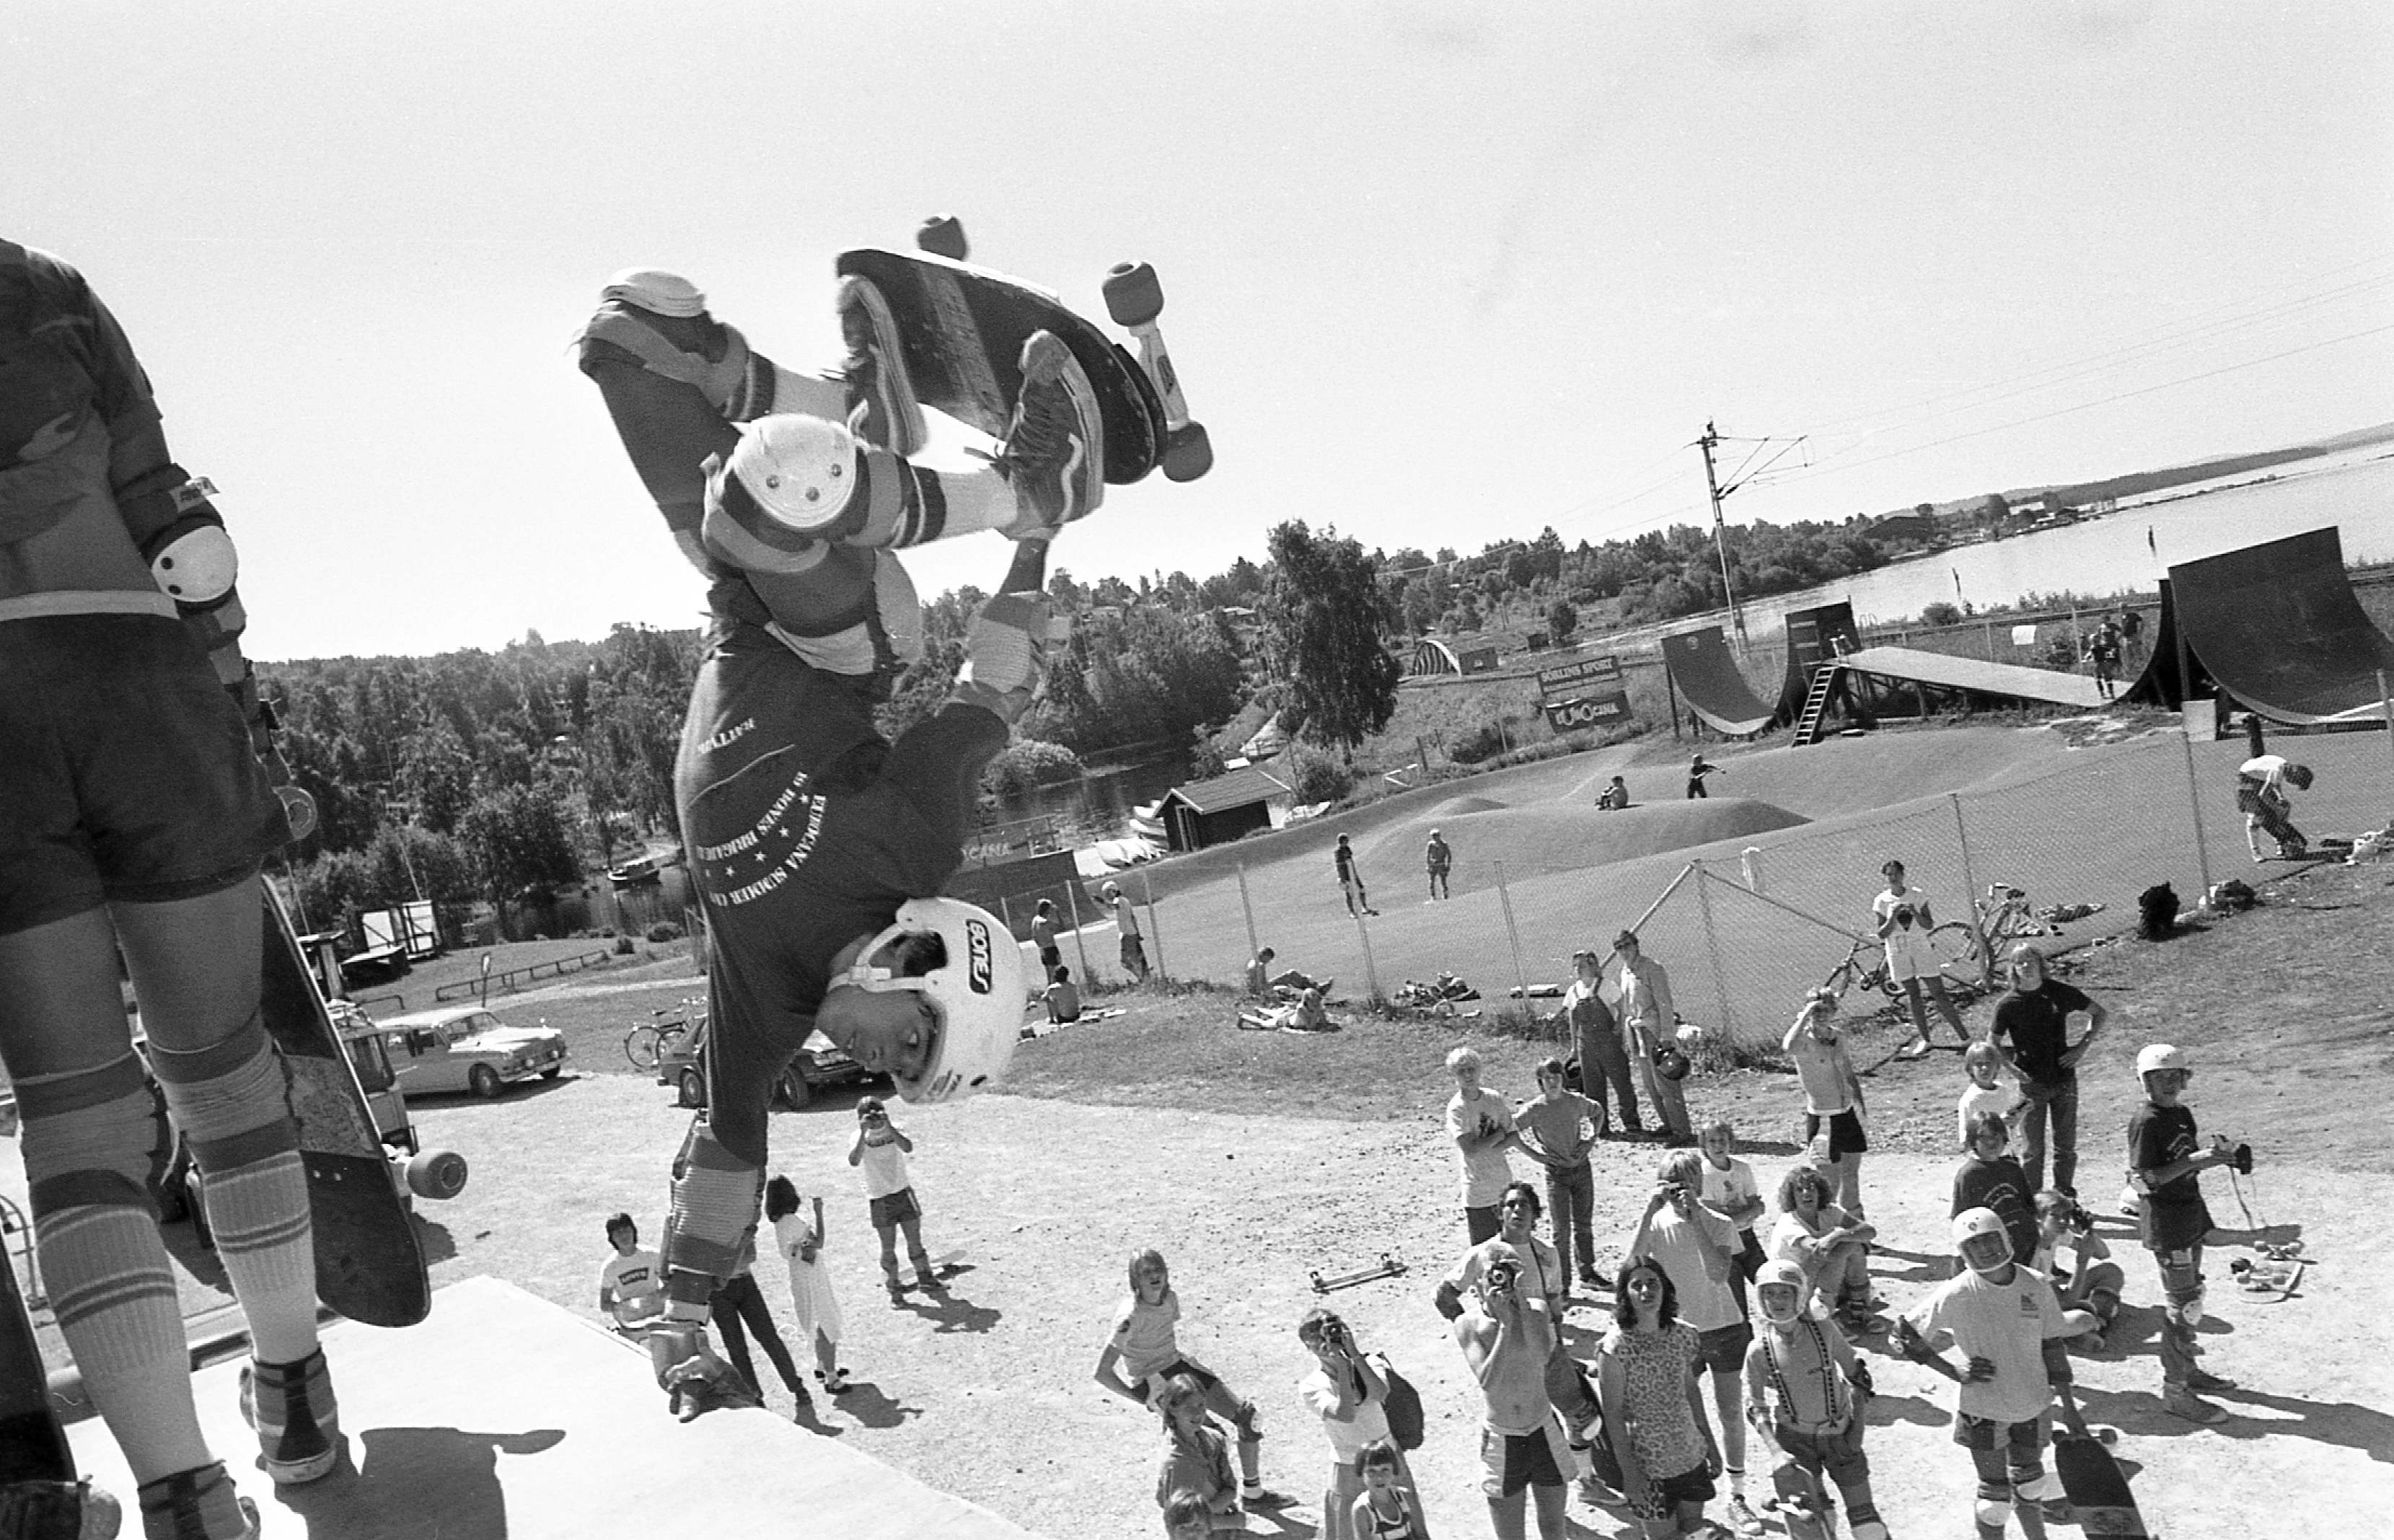 Summer Camp 1981 by Martin Willners